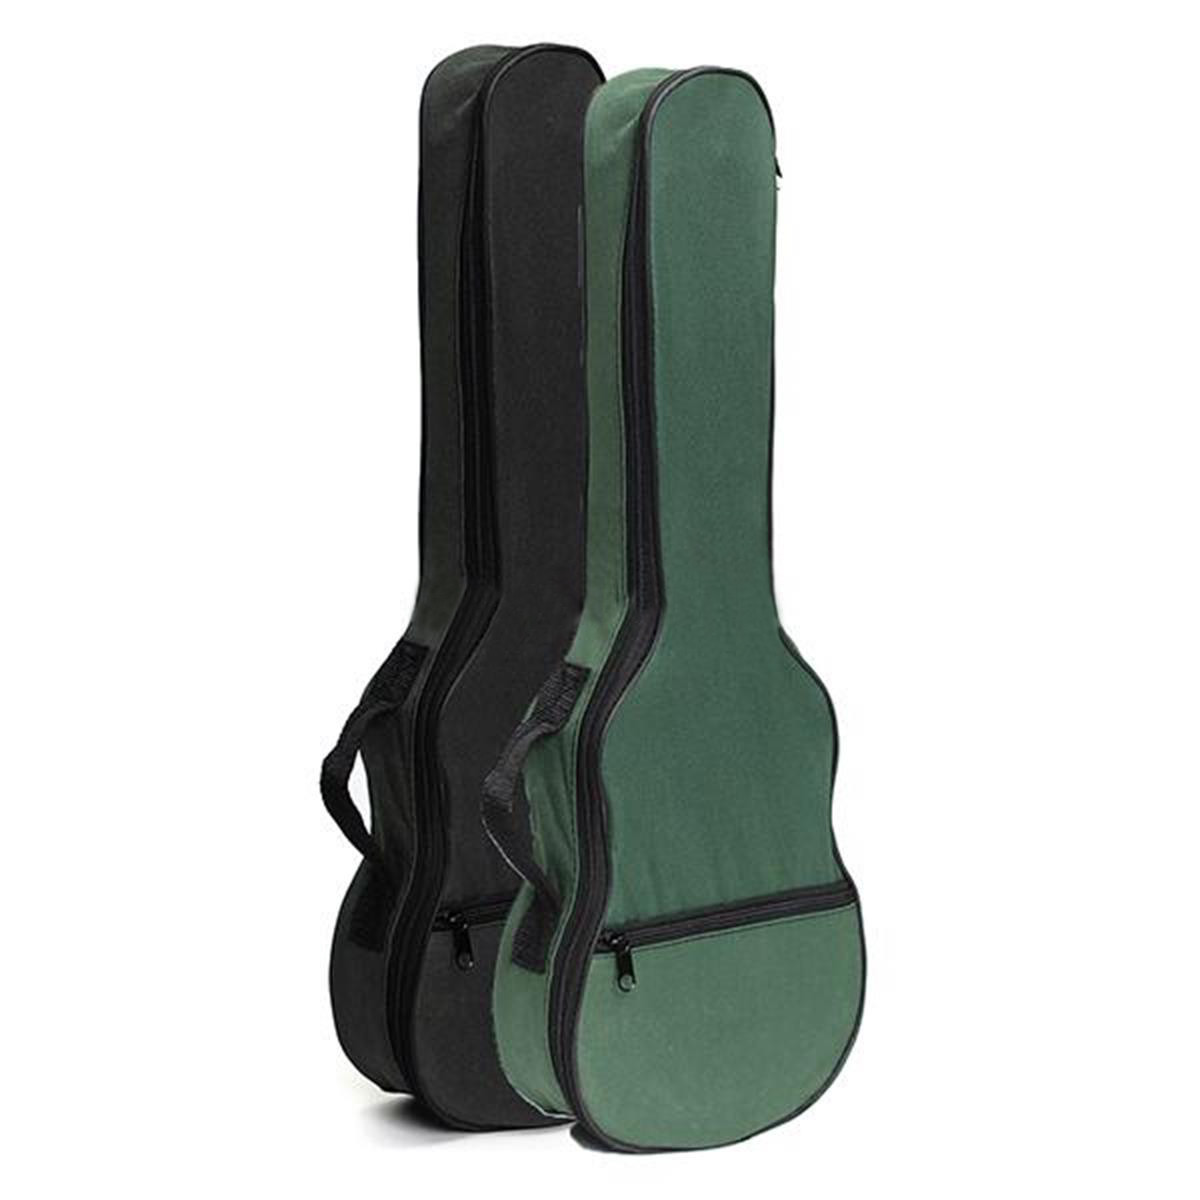 Zebra Soft Black Green Carry Ukulele Case Box Acoustic Guitar Bag With Shoulder Straps For Musical Instruments Parts Accessories аксессуар jawbone big jambox carry case j2011 03 case rp black